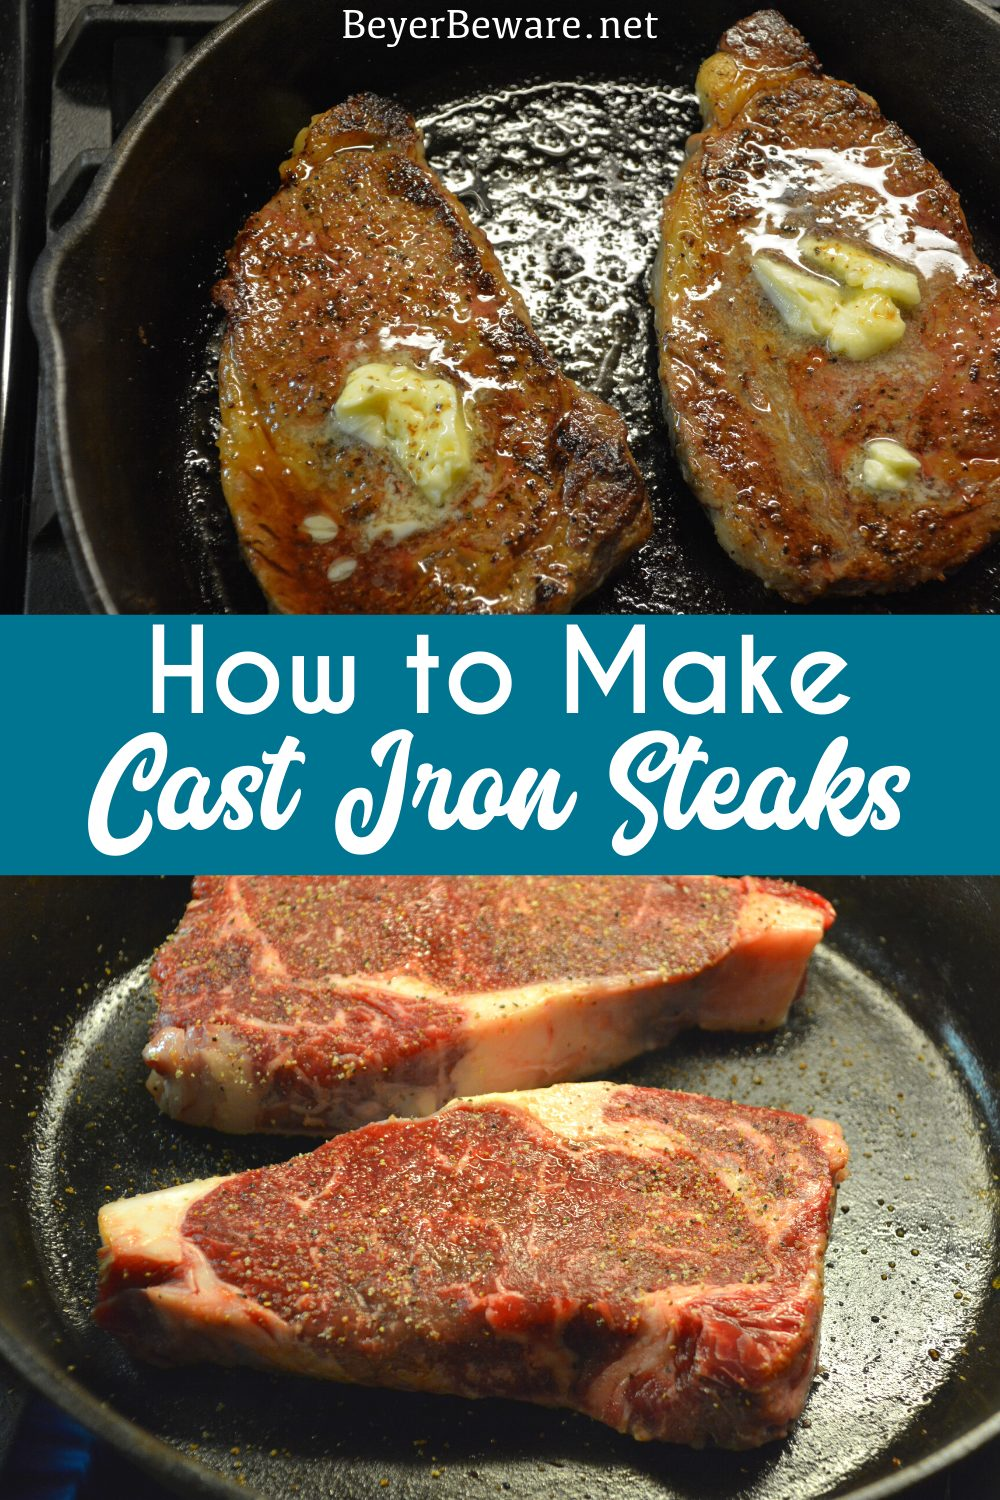 Cast Iron Skillet Steaks - How to make a steak on the stove and in the oven that is cooked medium rare or well done, this is how to make the perfect steak every time. #Steaks #CastIron #Beef #recipes